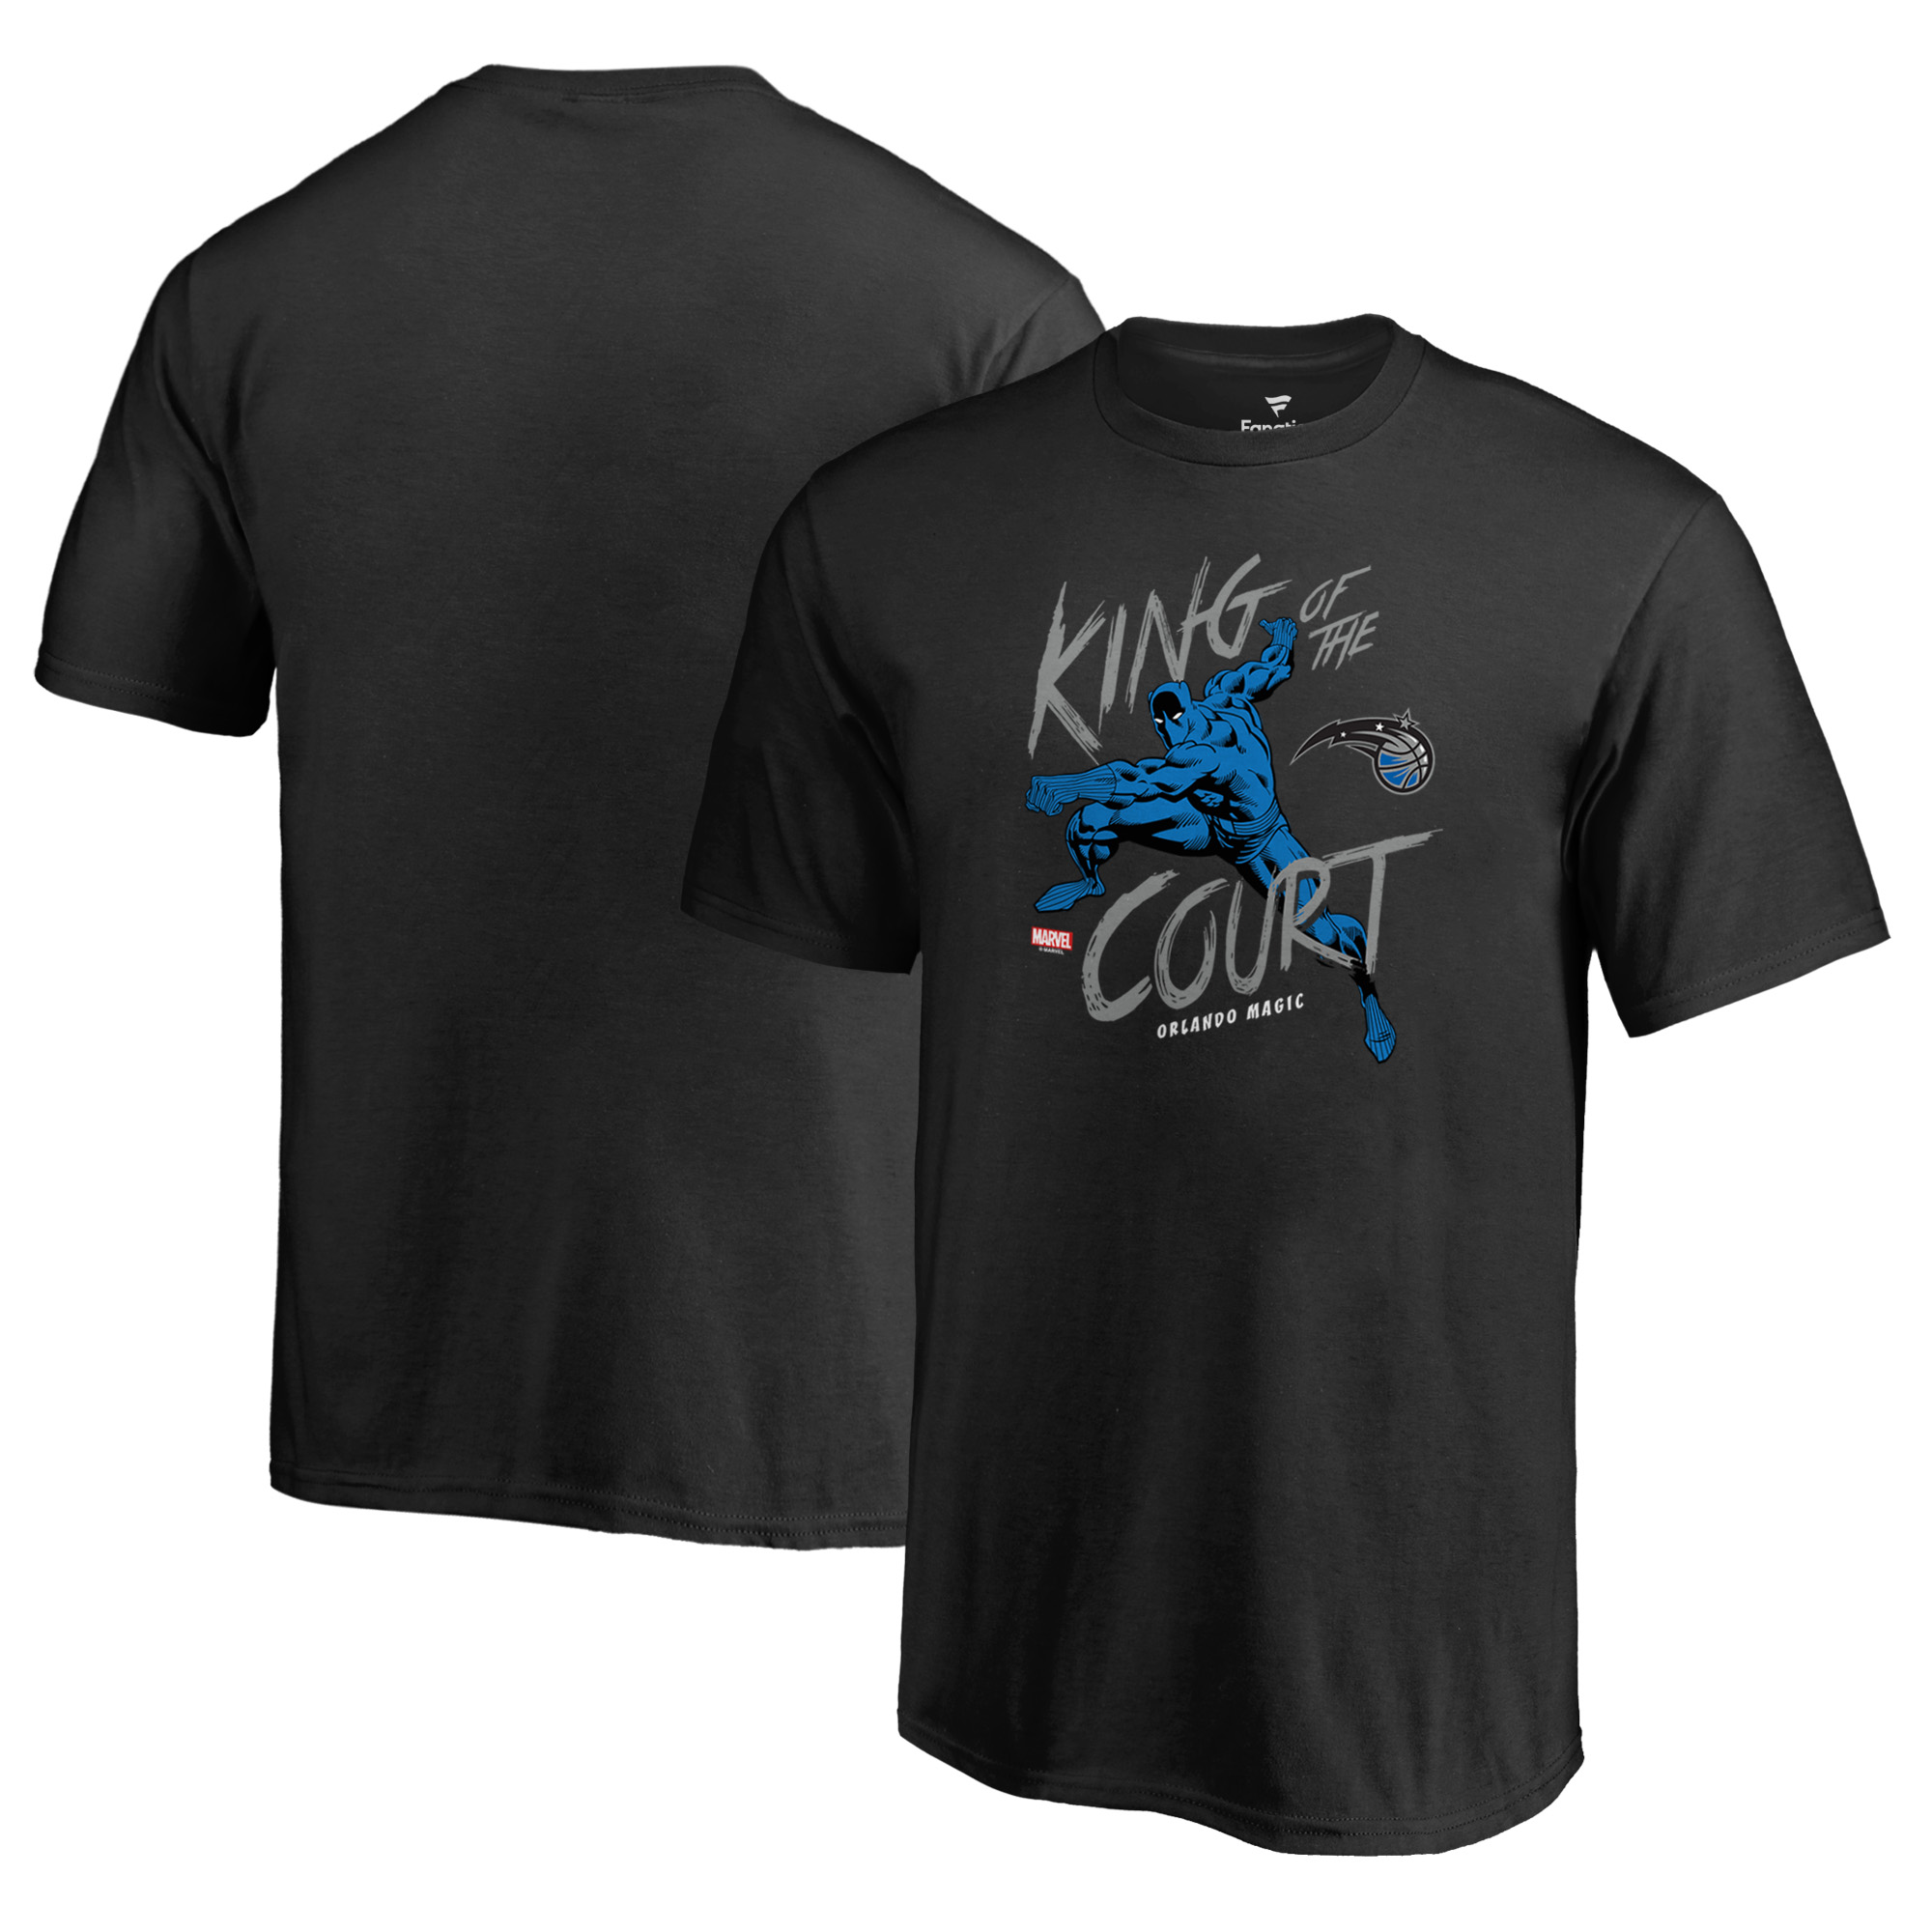 Orlando Magic Fanatics Branded Youth Marvel Black Panther King of the Court T-Shirt - Black